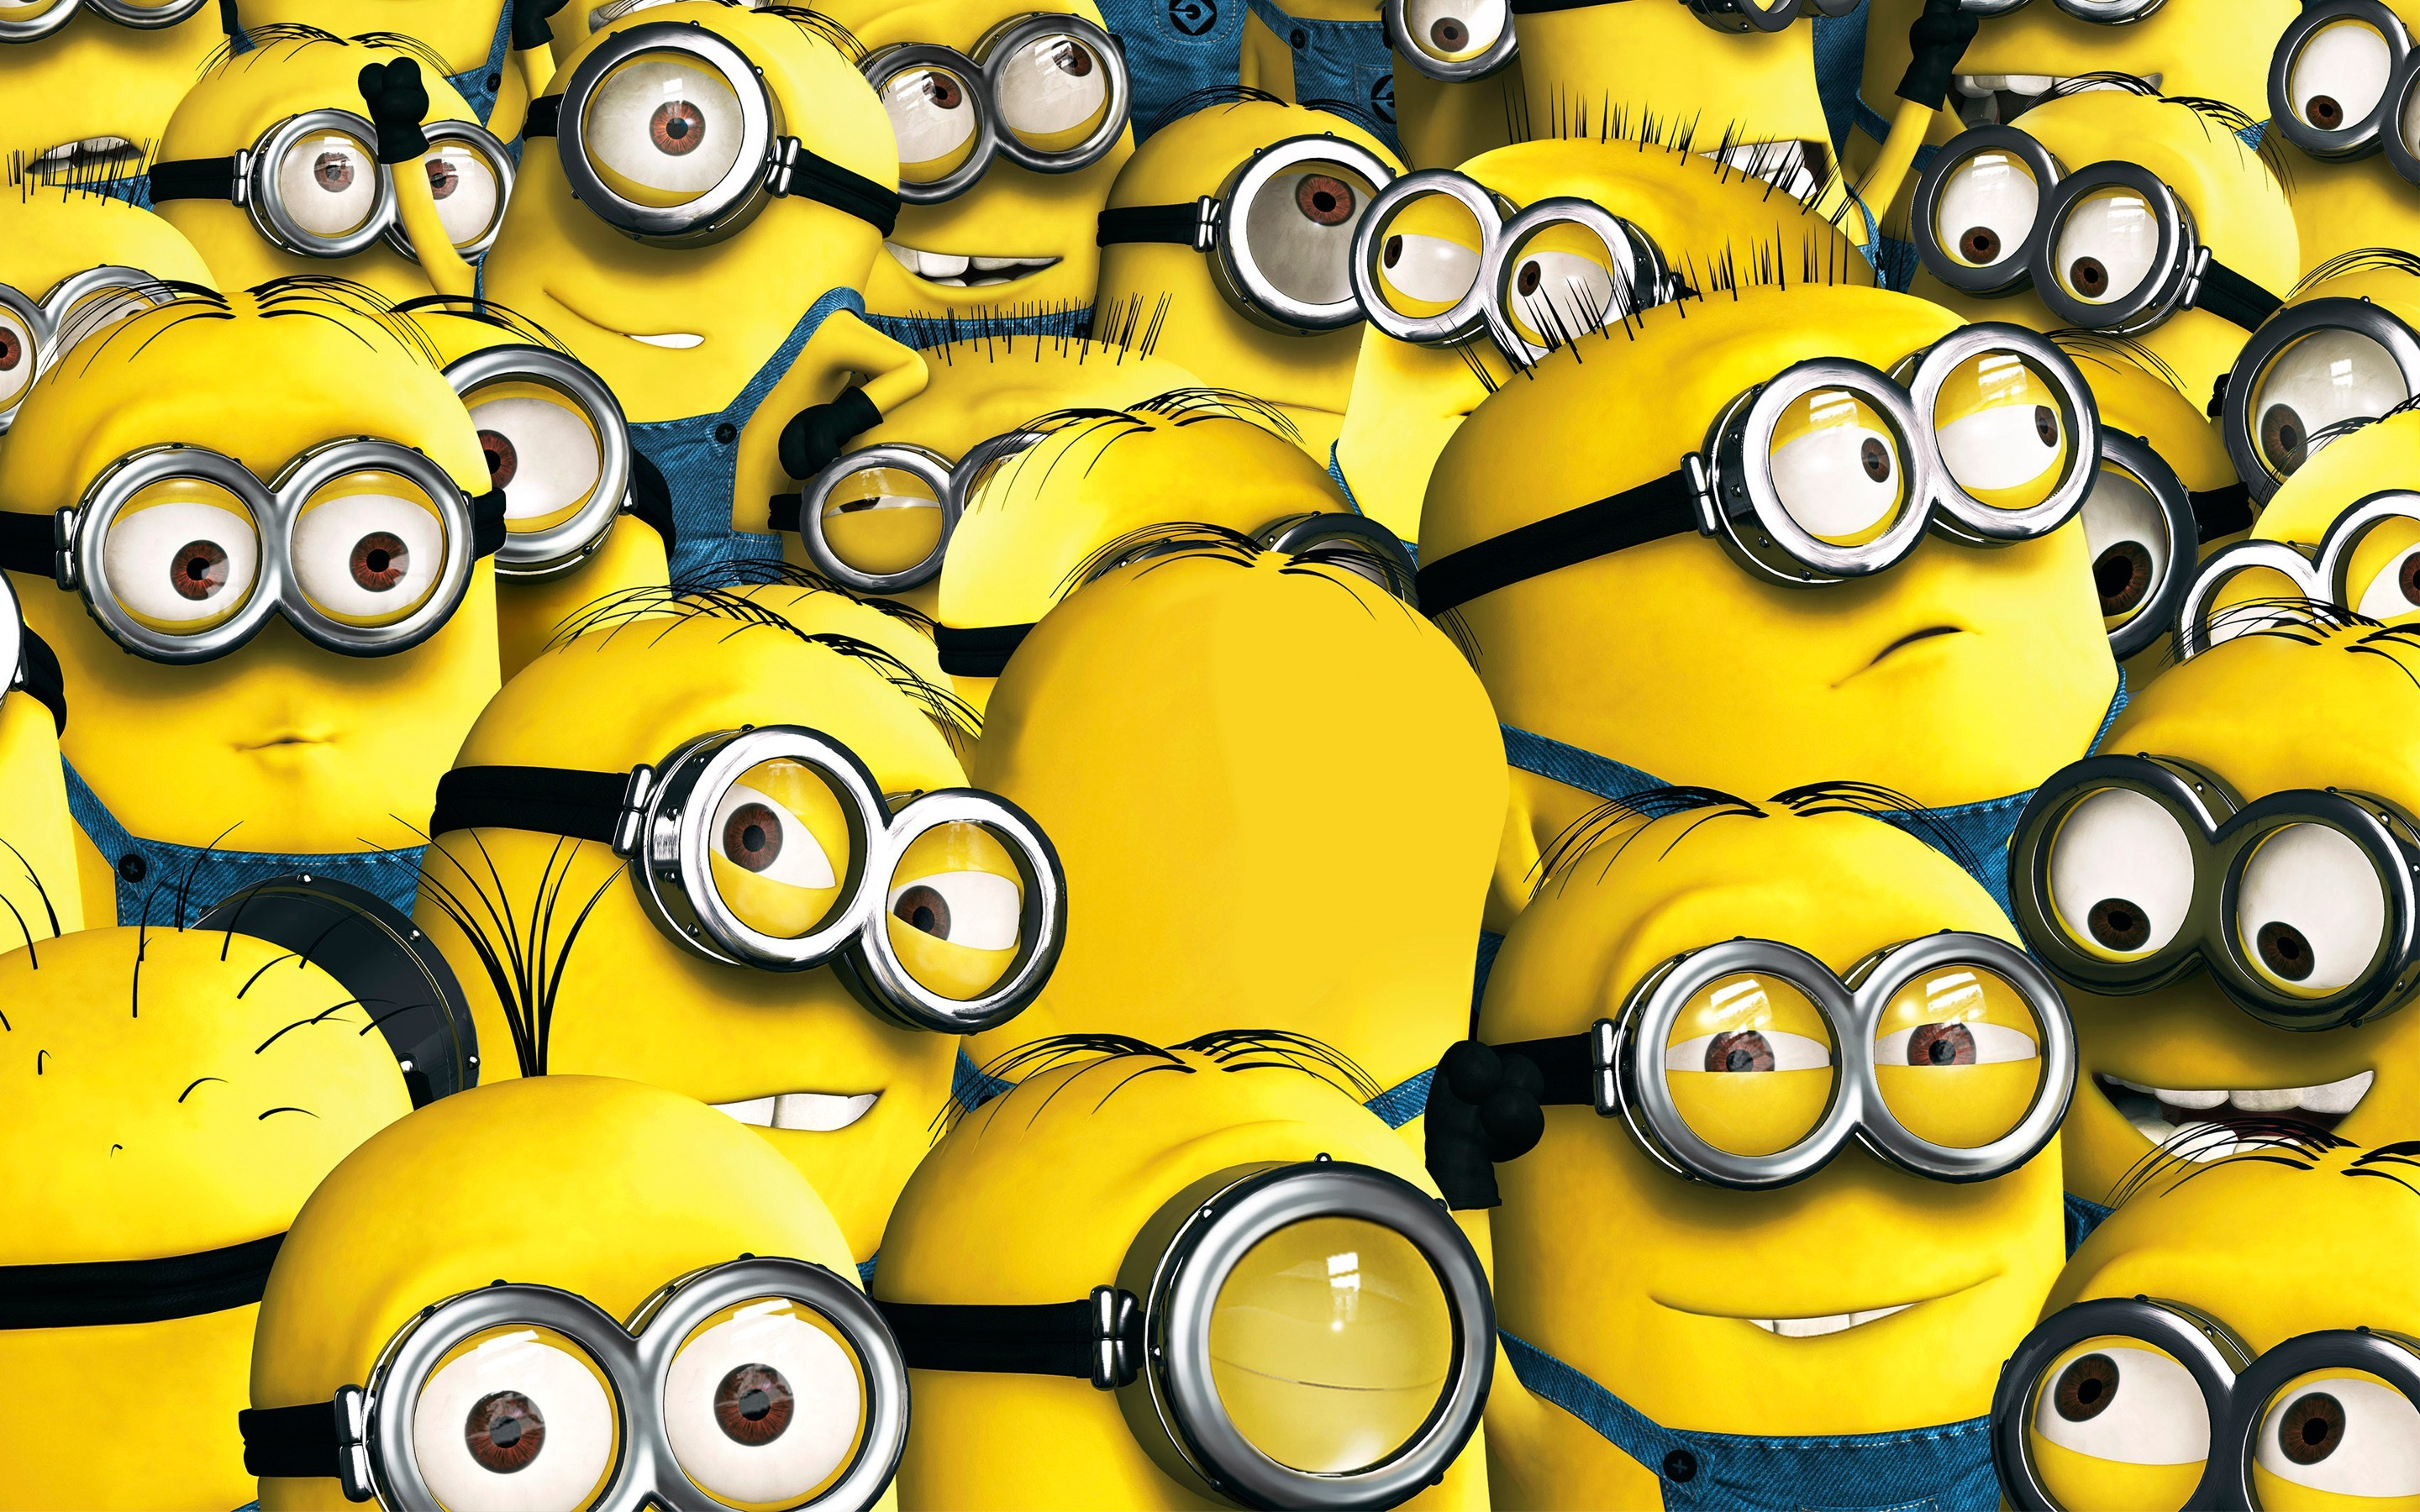 … download deable me minions hd 4k wallpapers in 2048×1152 …